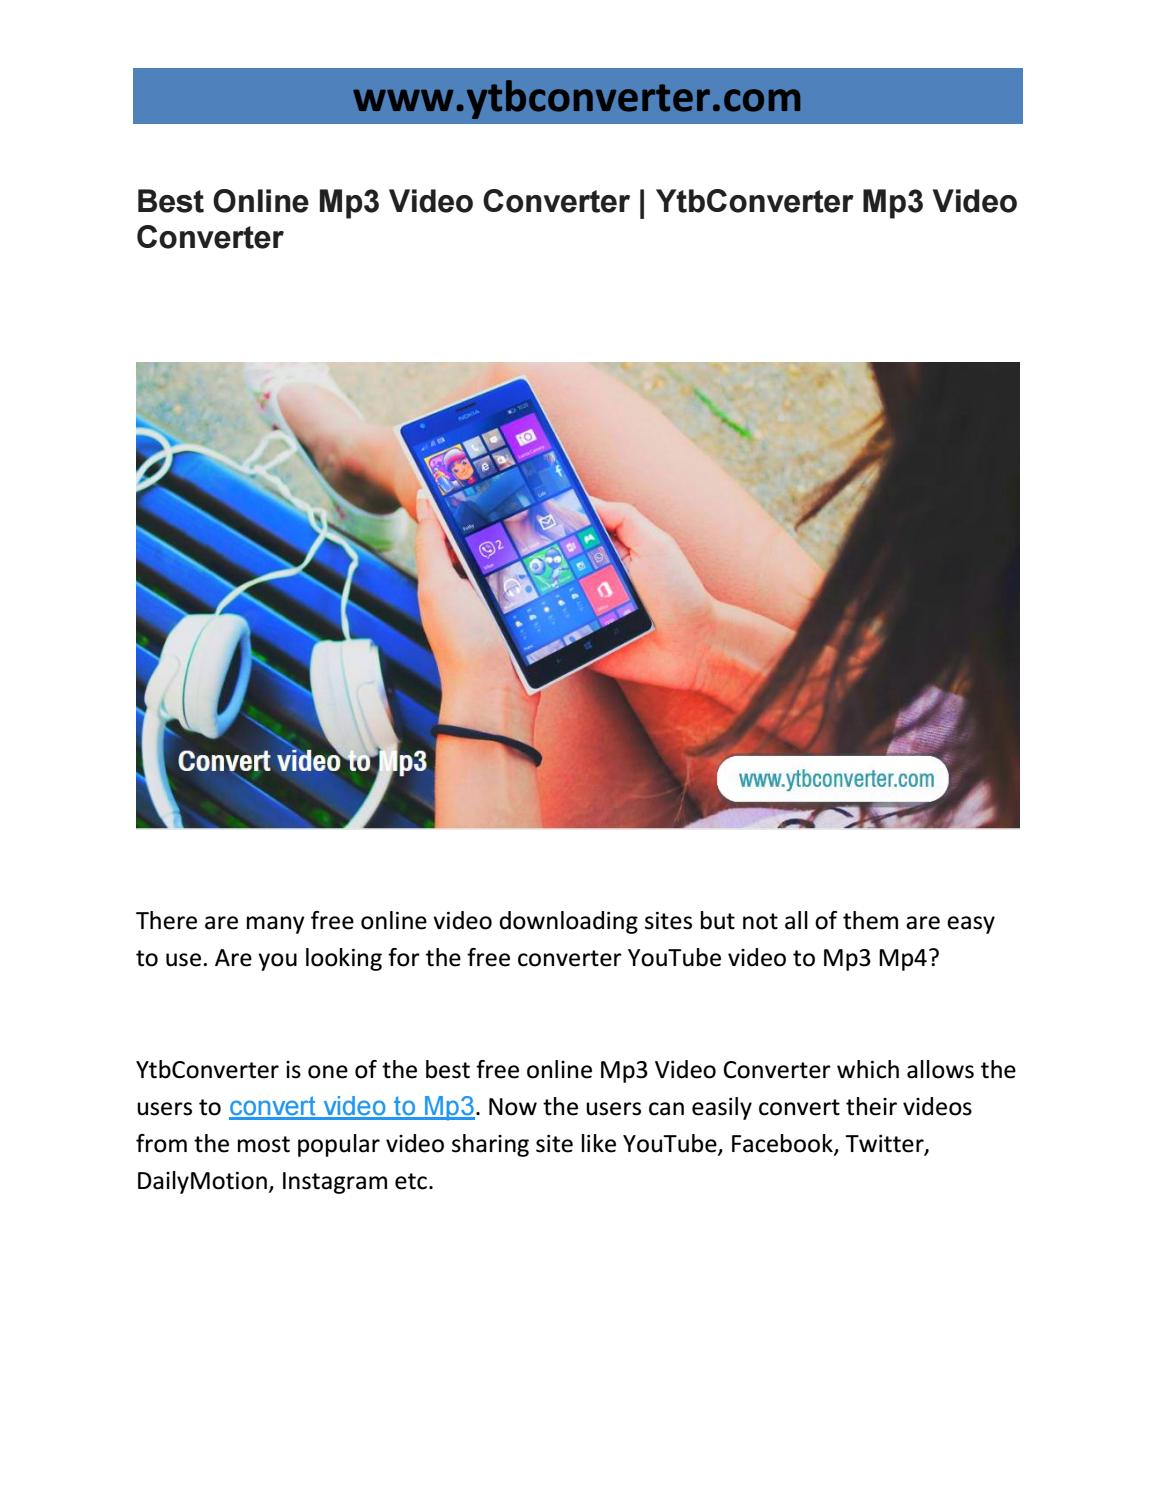 Best Online Mp3 Video Converter | YtbConverter Mp3 Video